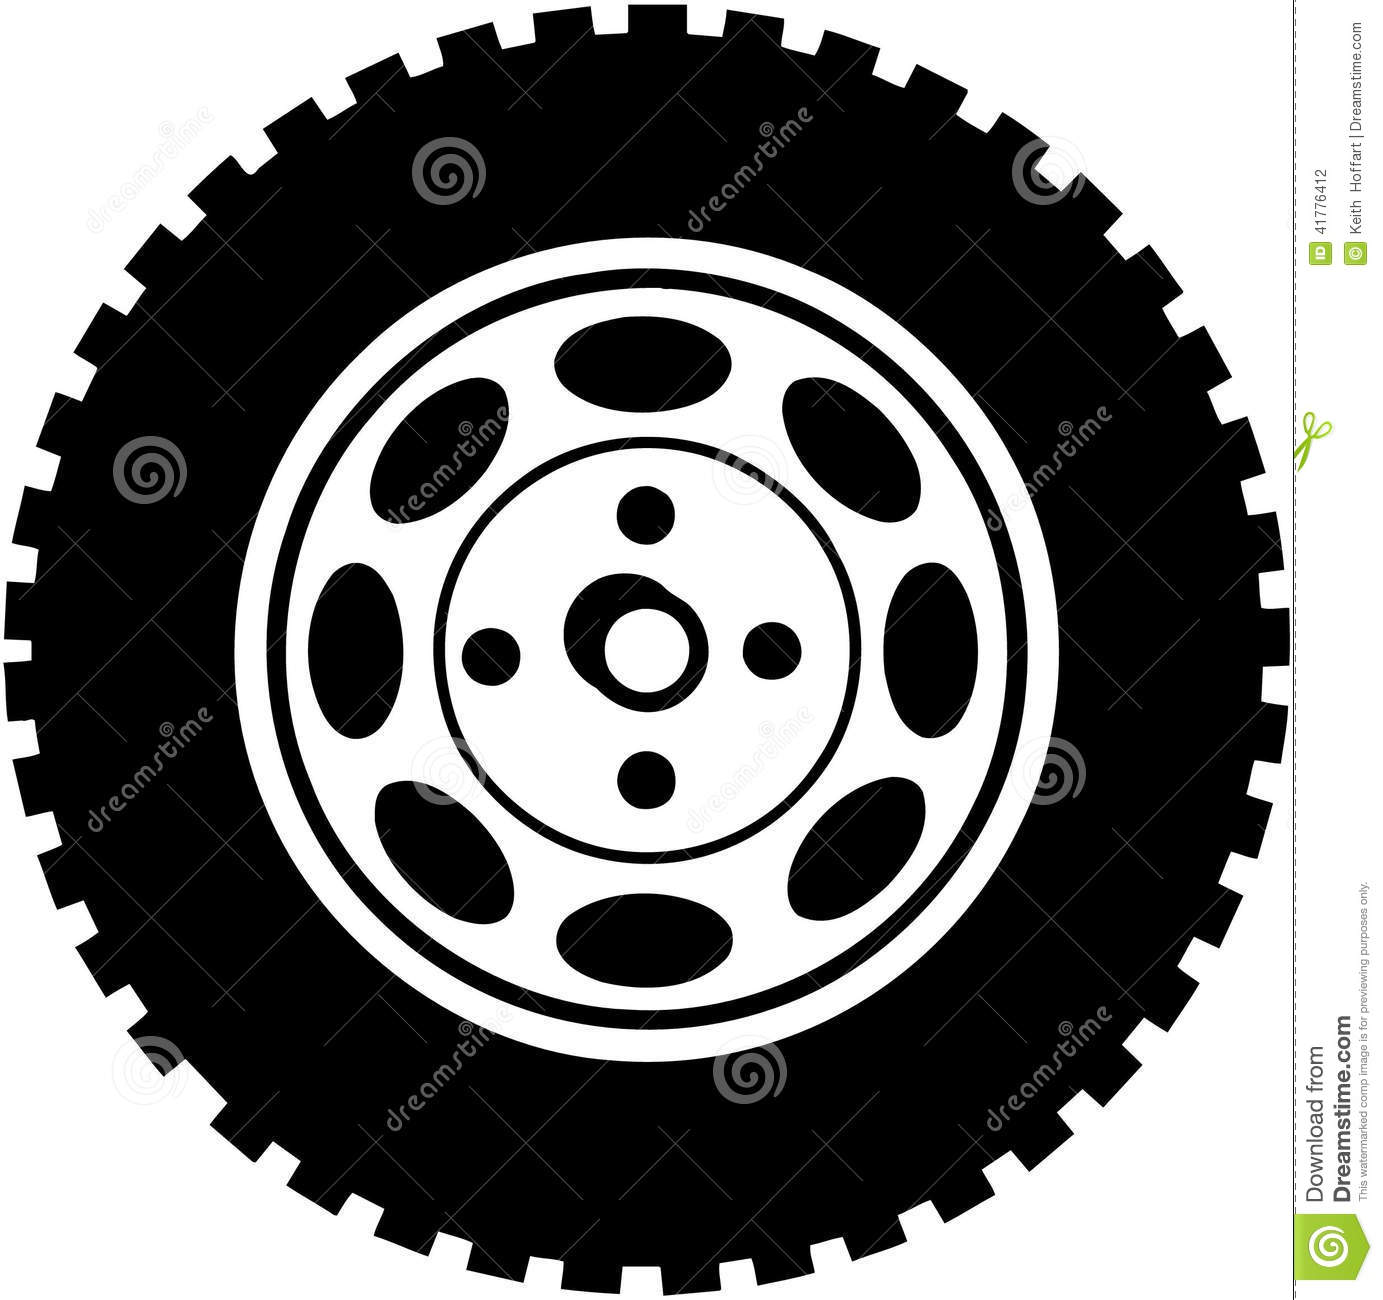 Car tire on road clipart.